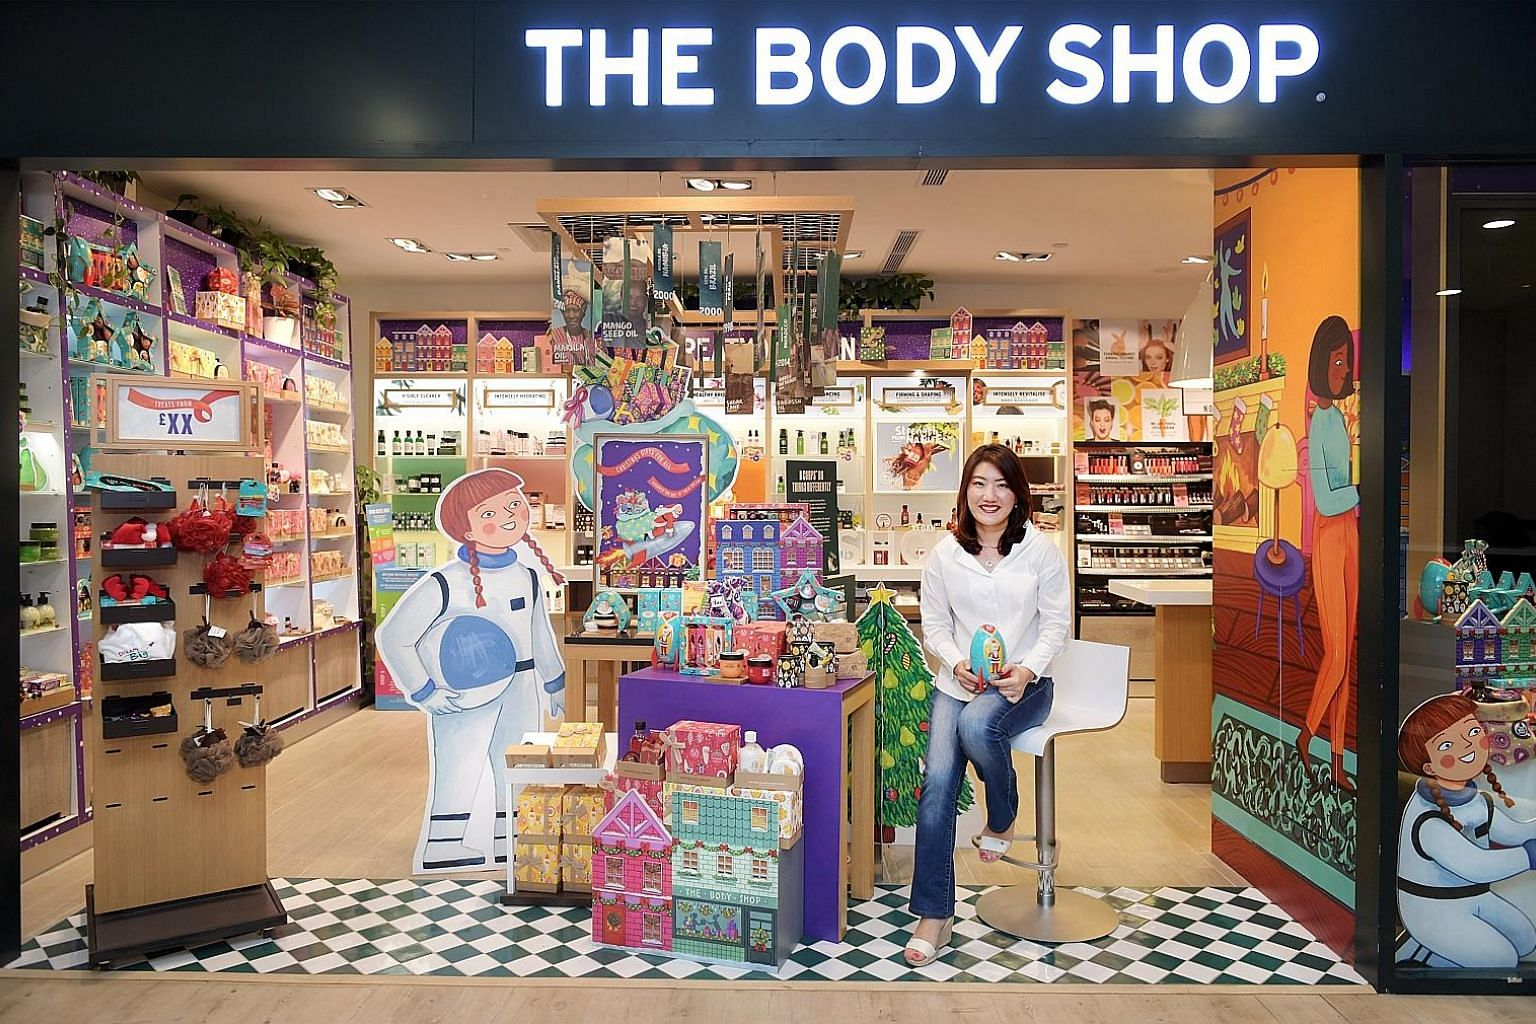 Ms Yang Kean Hye, The Body Shop's general manager for the Asia-Pacific and Singapore, says the company's sustainable ethos keeps it relevant in a retail environment where customers flock to online sources and hop from brand to brand. The company is a